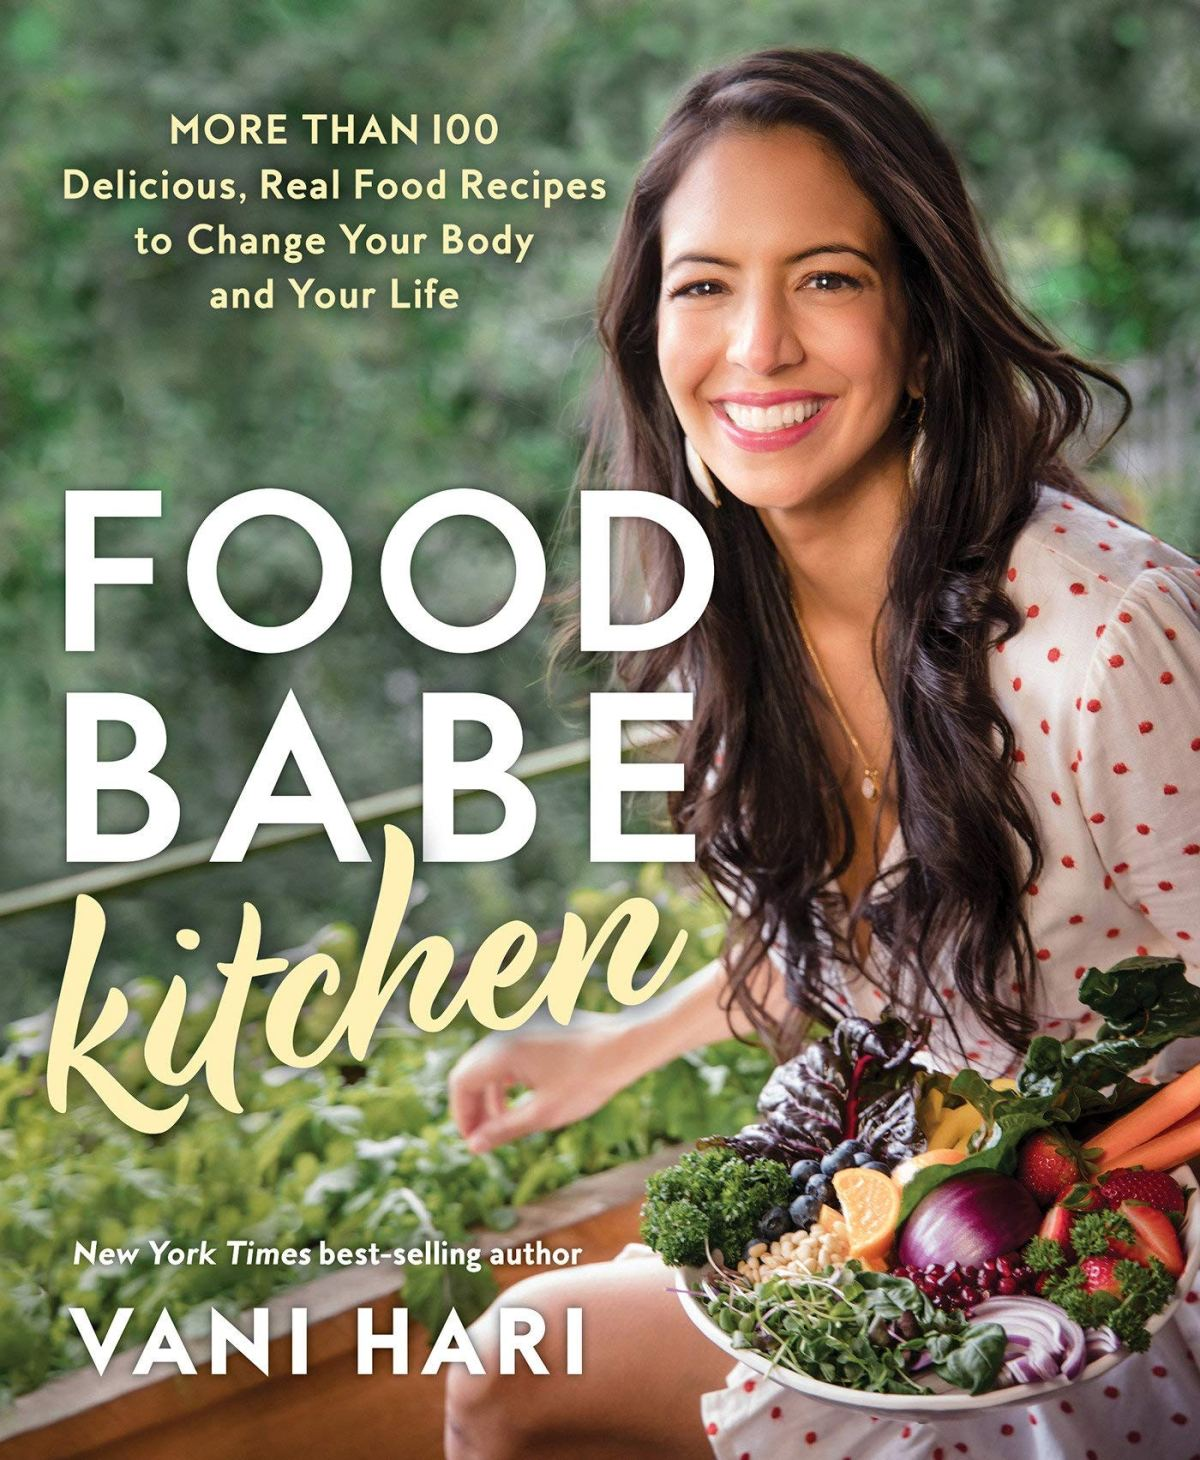 Food Babe Kitchen: More than 100 Delicious, Real Food Recipes to Change Your Body and Your Life: THE NEW YORK TIMES BESTSELLER 1